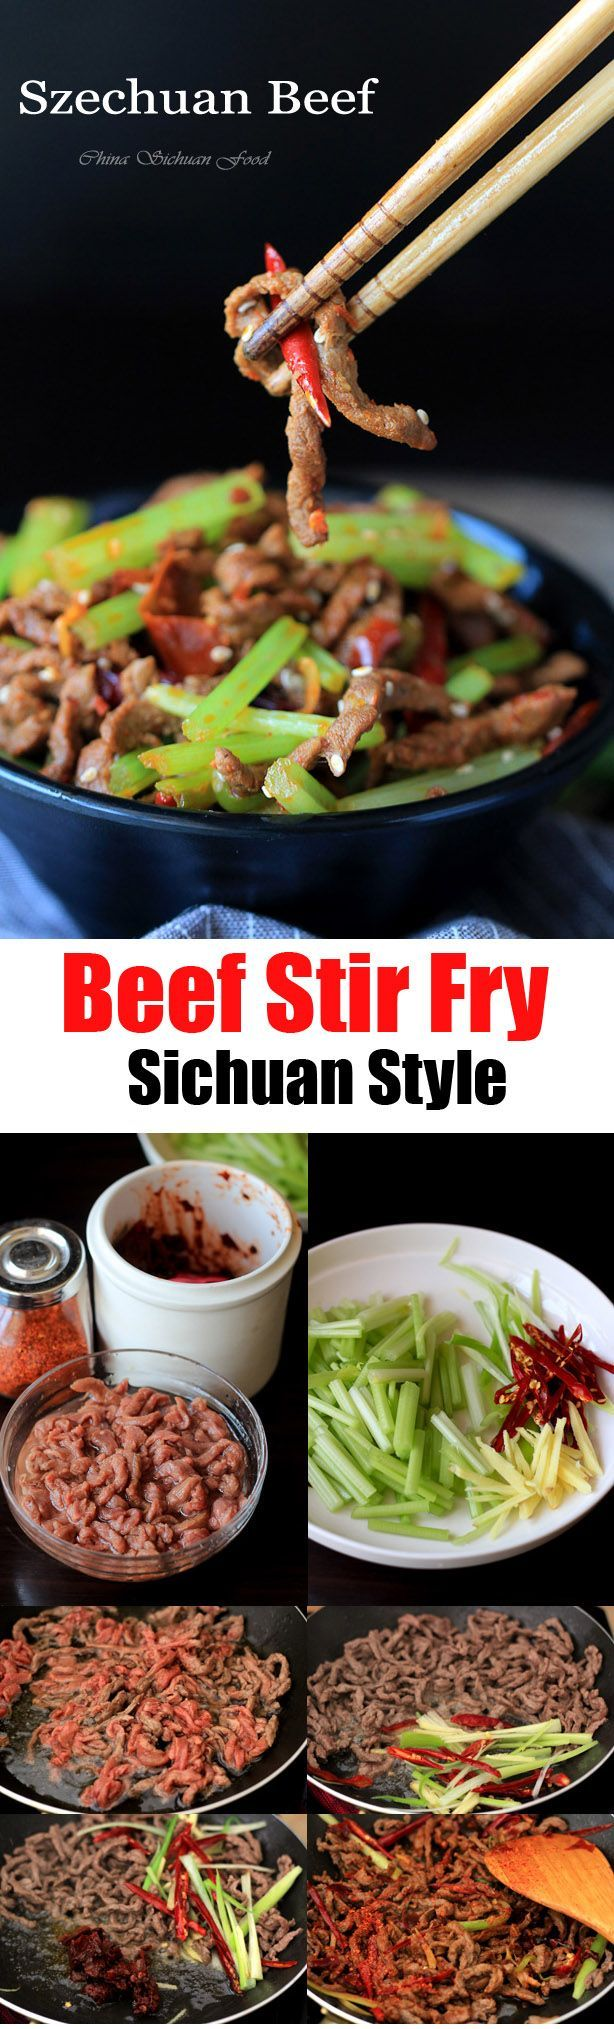 shredded beef szechuan style  recipe with images